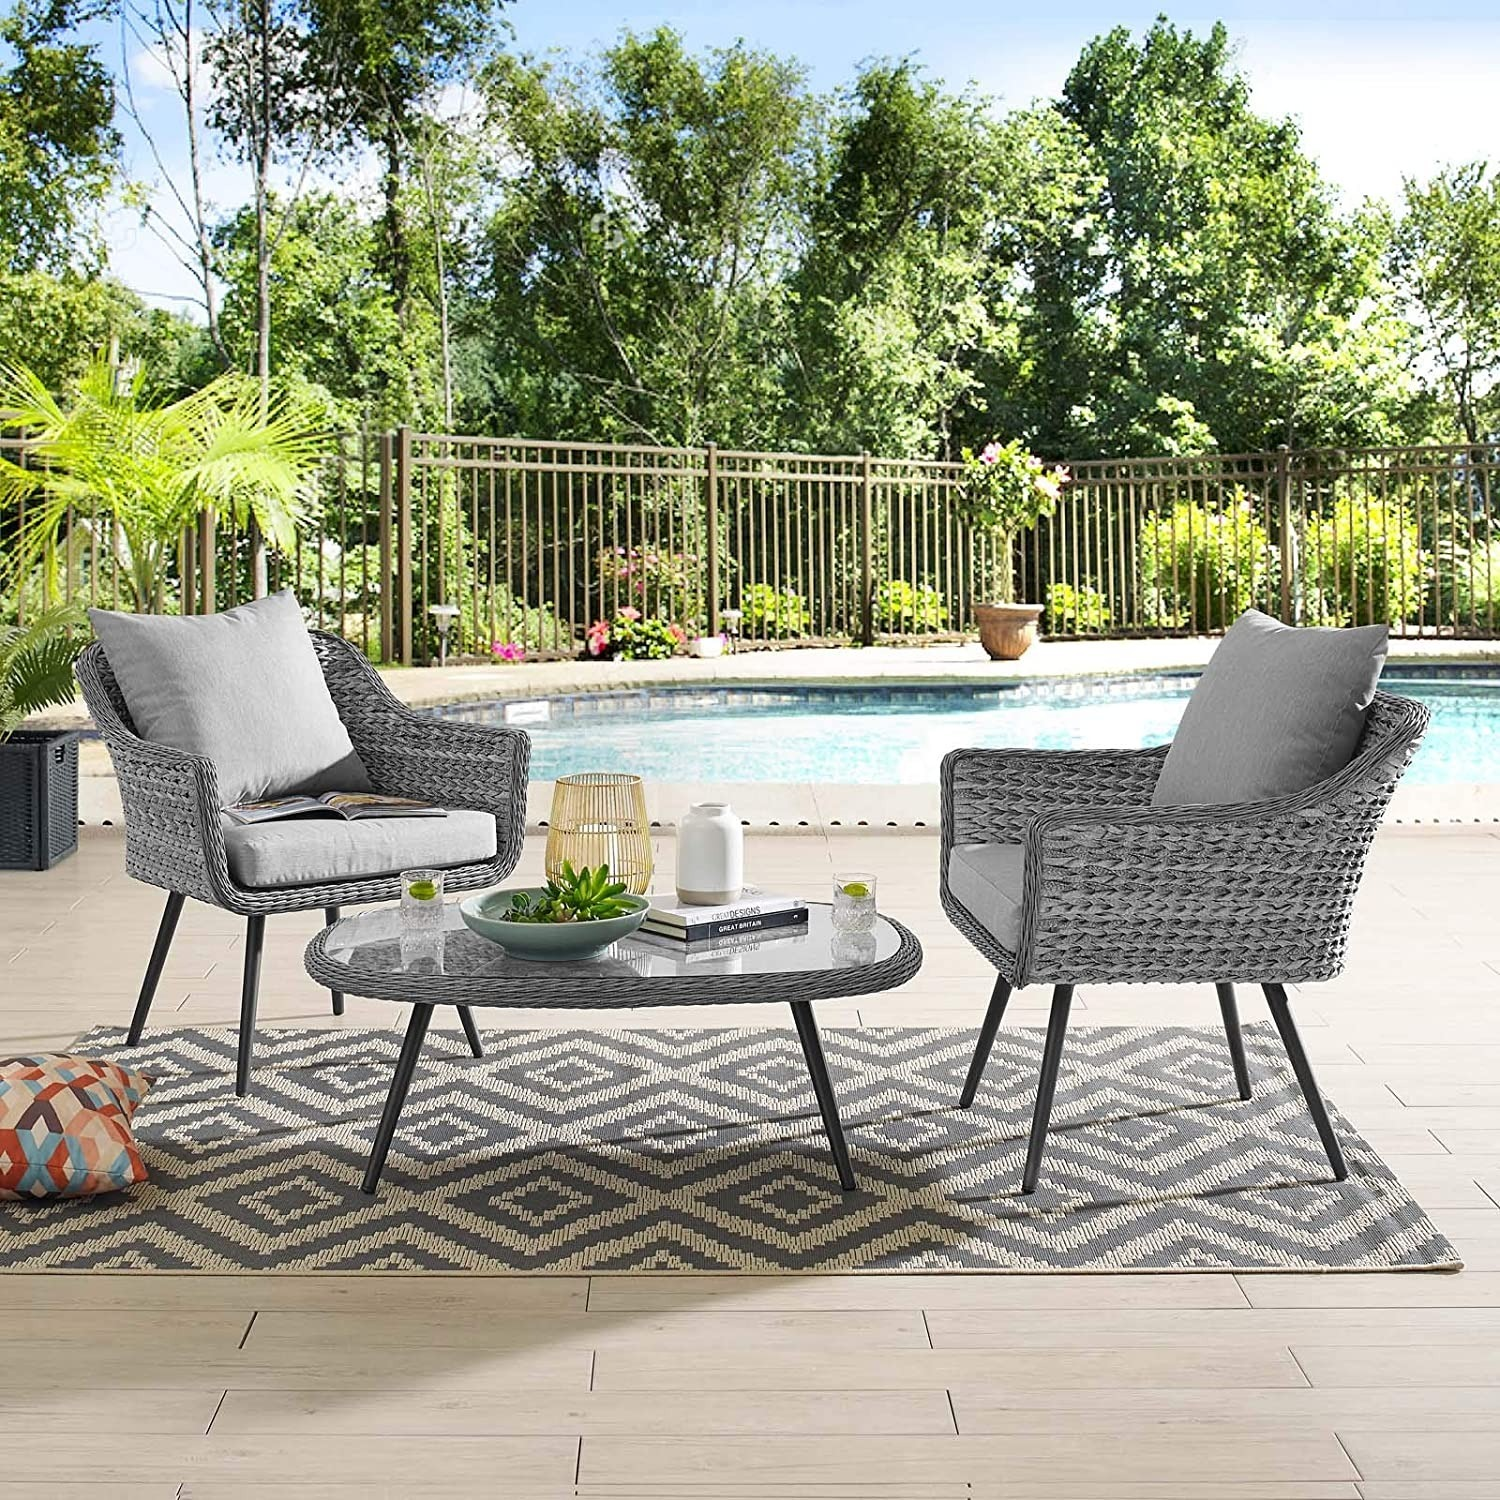 3-Piece Outdoor Sectional In Gray-On-Gray Tone - image-3